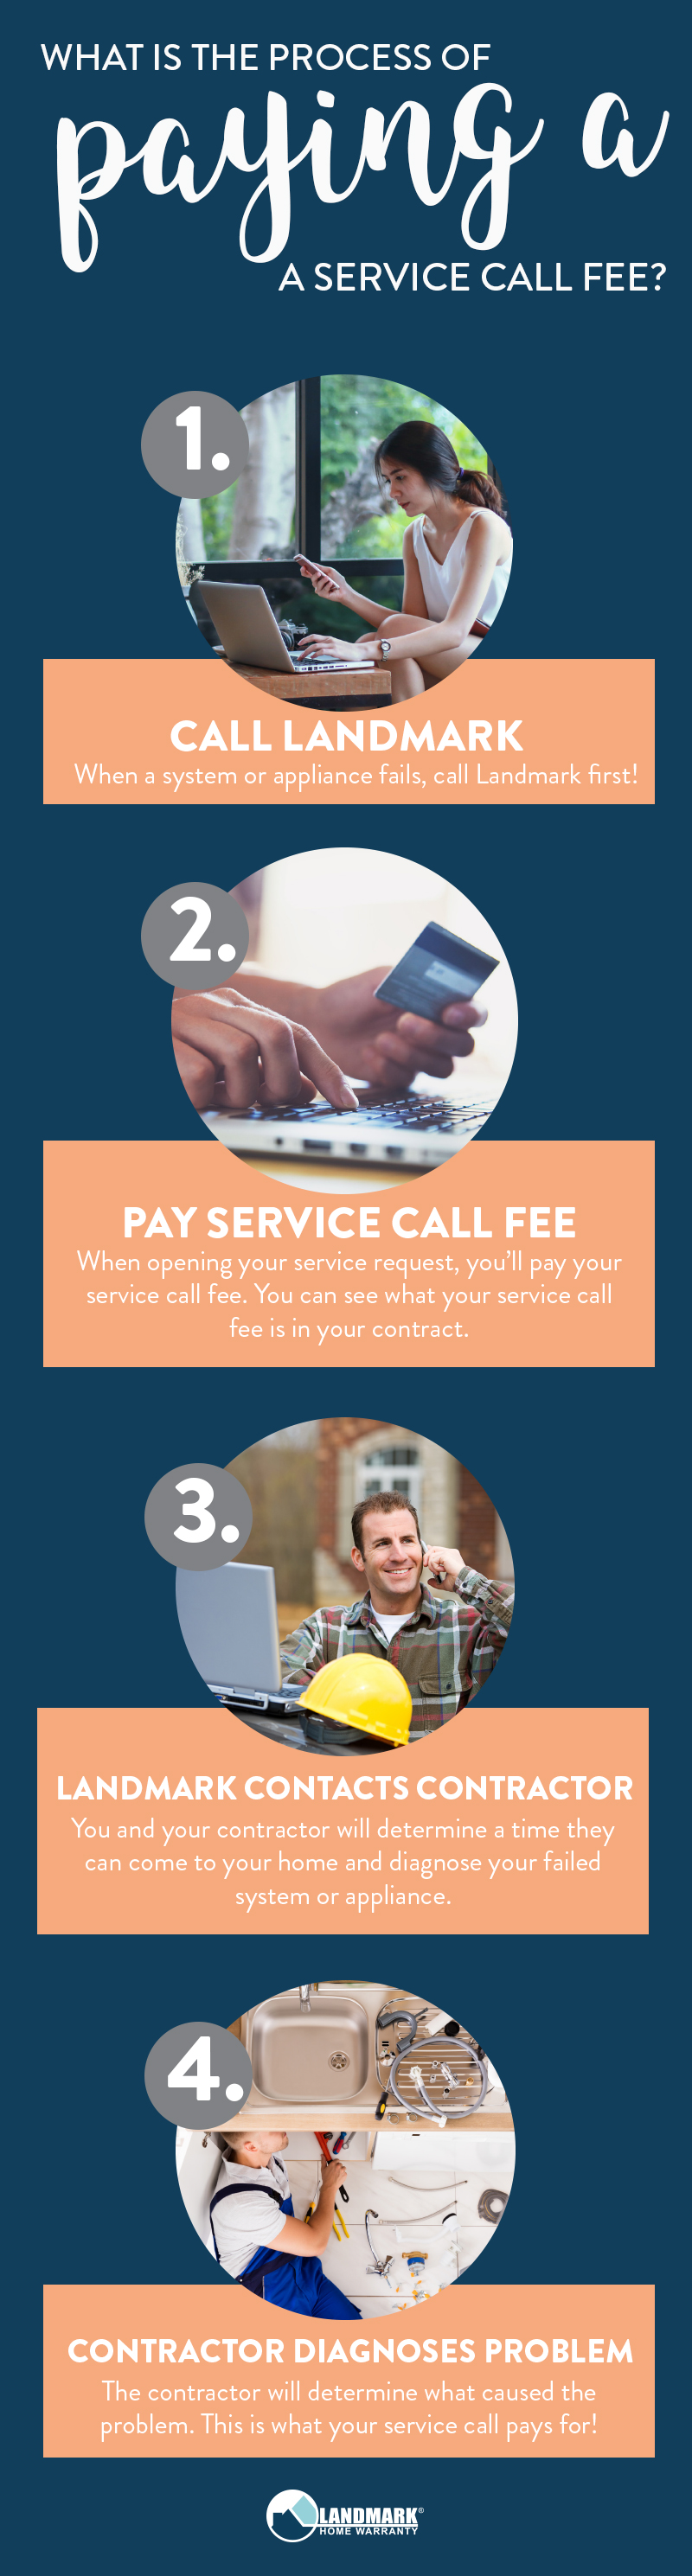 A service call fee is an important part of the home warranty process! You have to pay it in order to receive a diagnosis of your failed system or appliance.